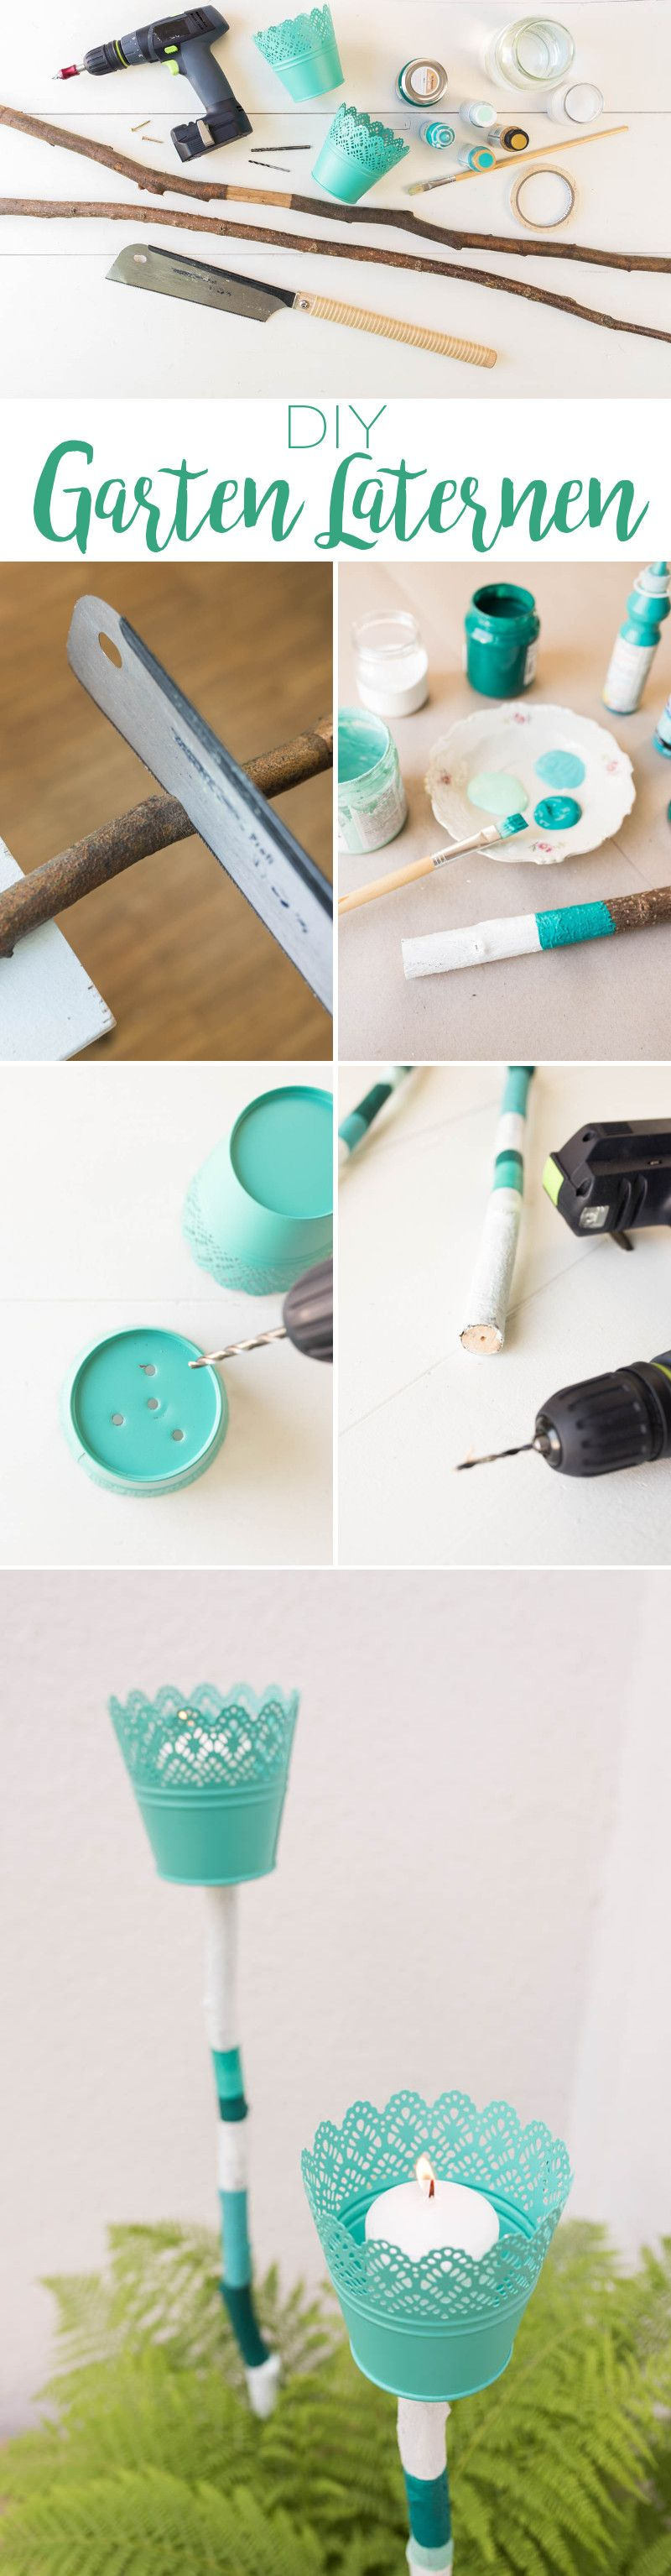 Photo of DIY – hagelanterner for planters av blomsterpotter og grener – Leelah Loves